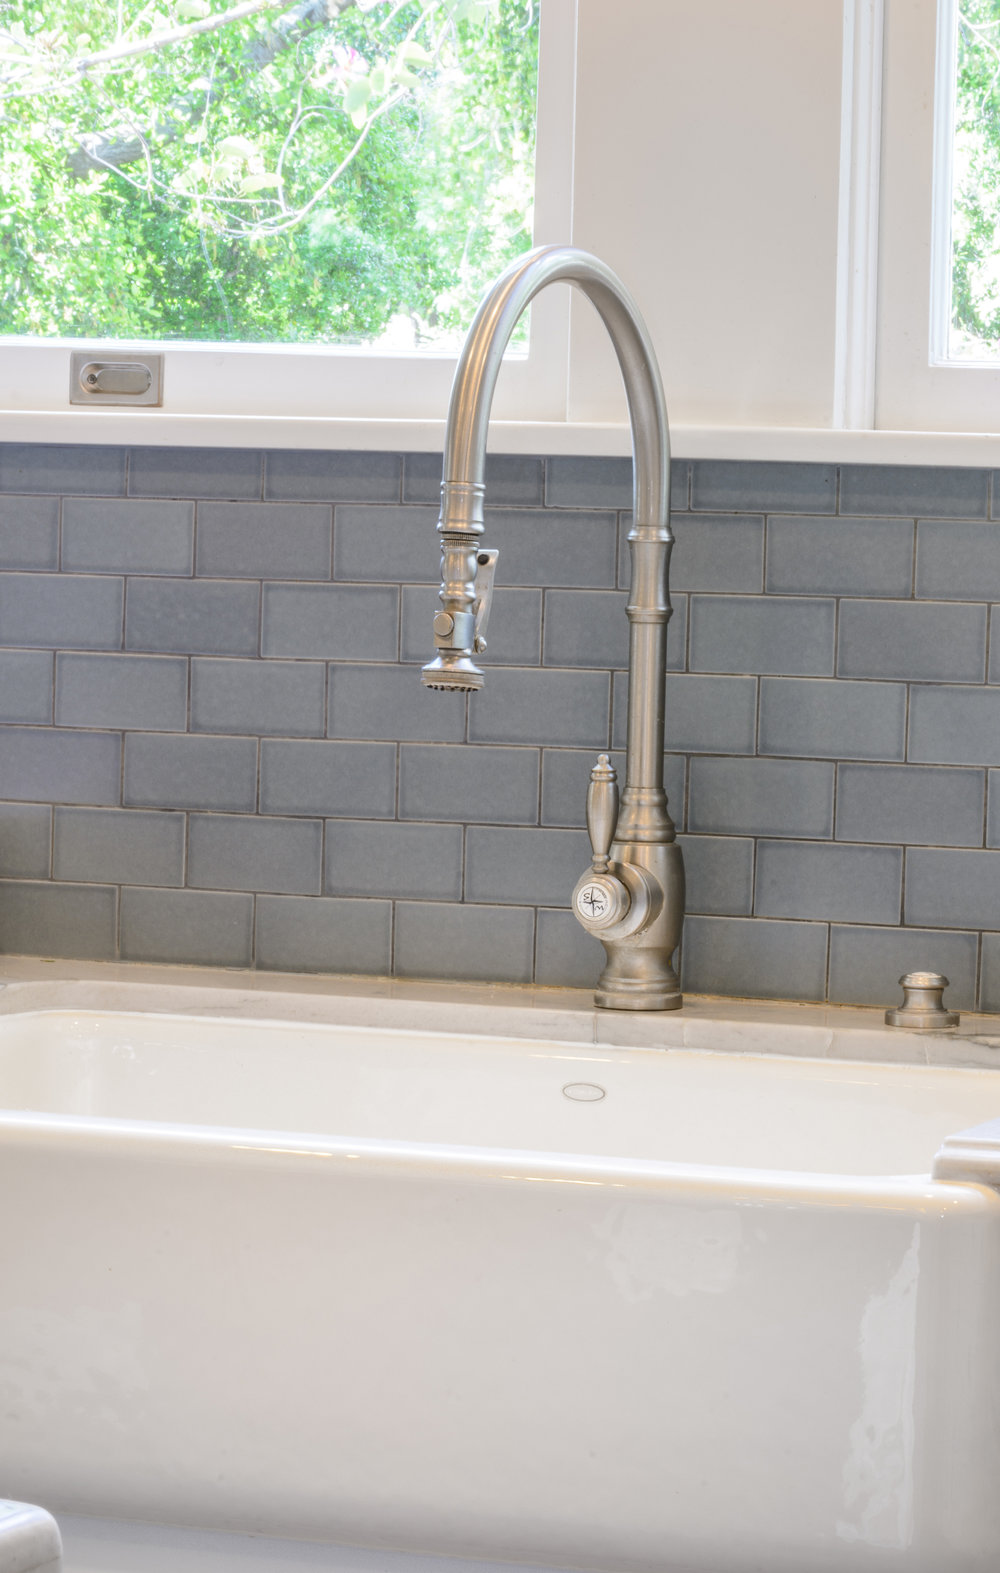 The farmhouse sink, gooseneck faucet, marble counter, light blue tile backsplash and white wood windows enlight simplicity in all its beauty